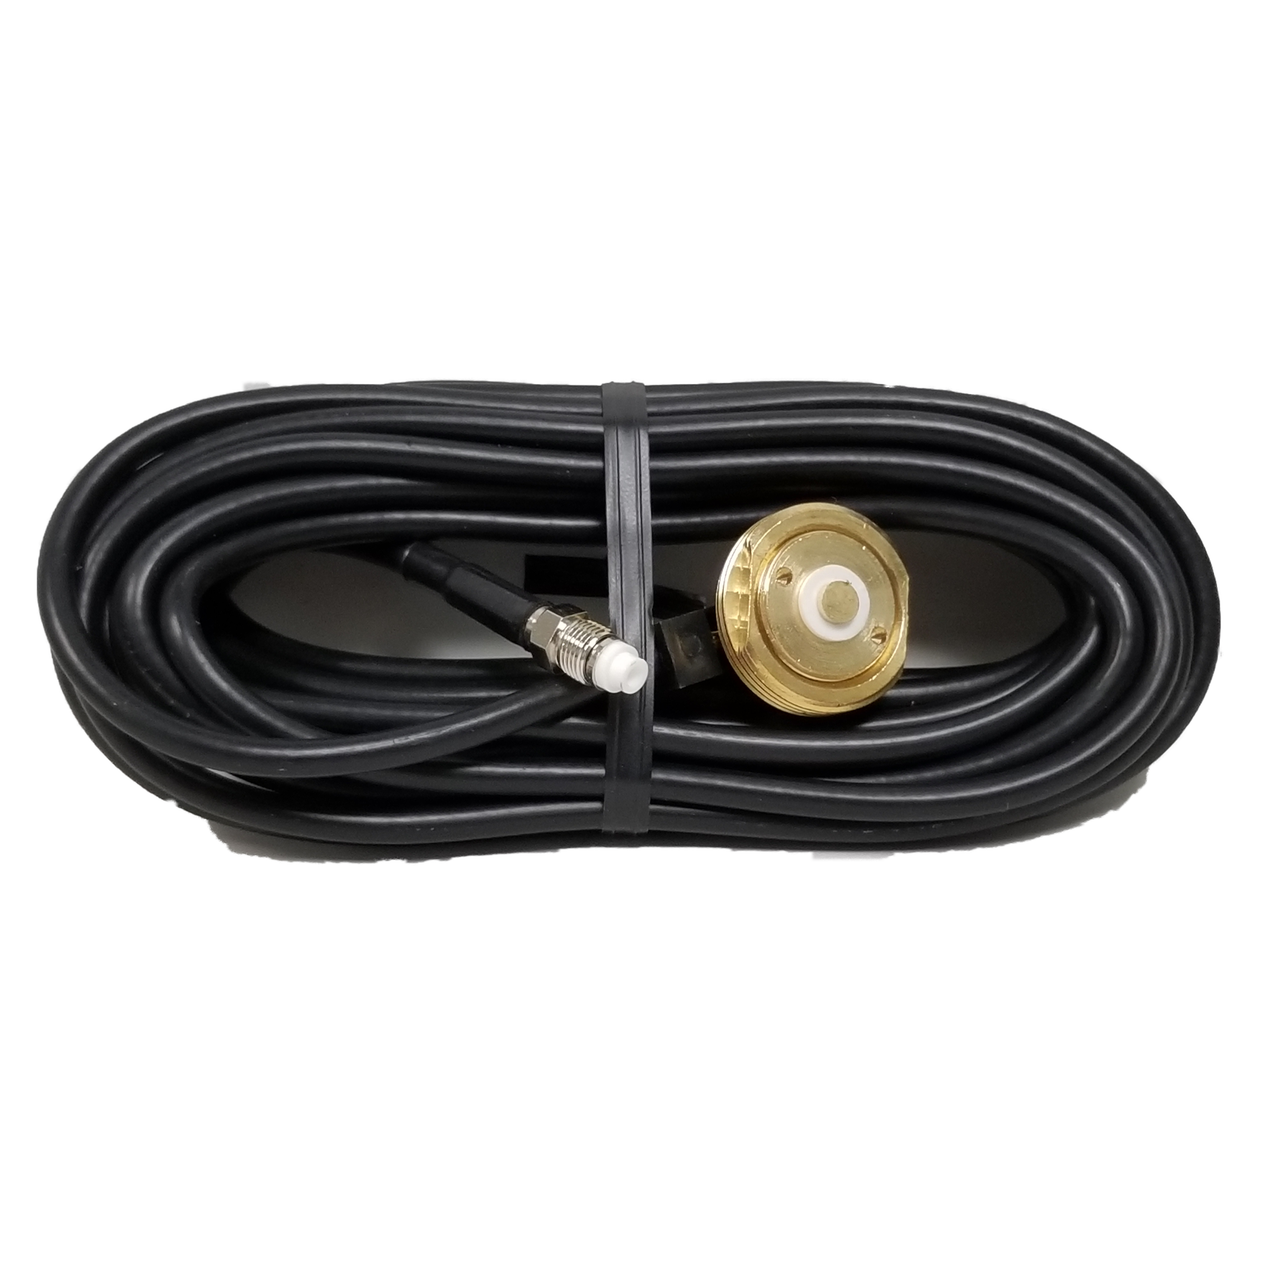 NMO-3417 - NMO Antenna Cable Mount - 17-Foot RG-58 - TYPE N